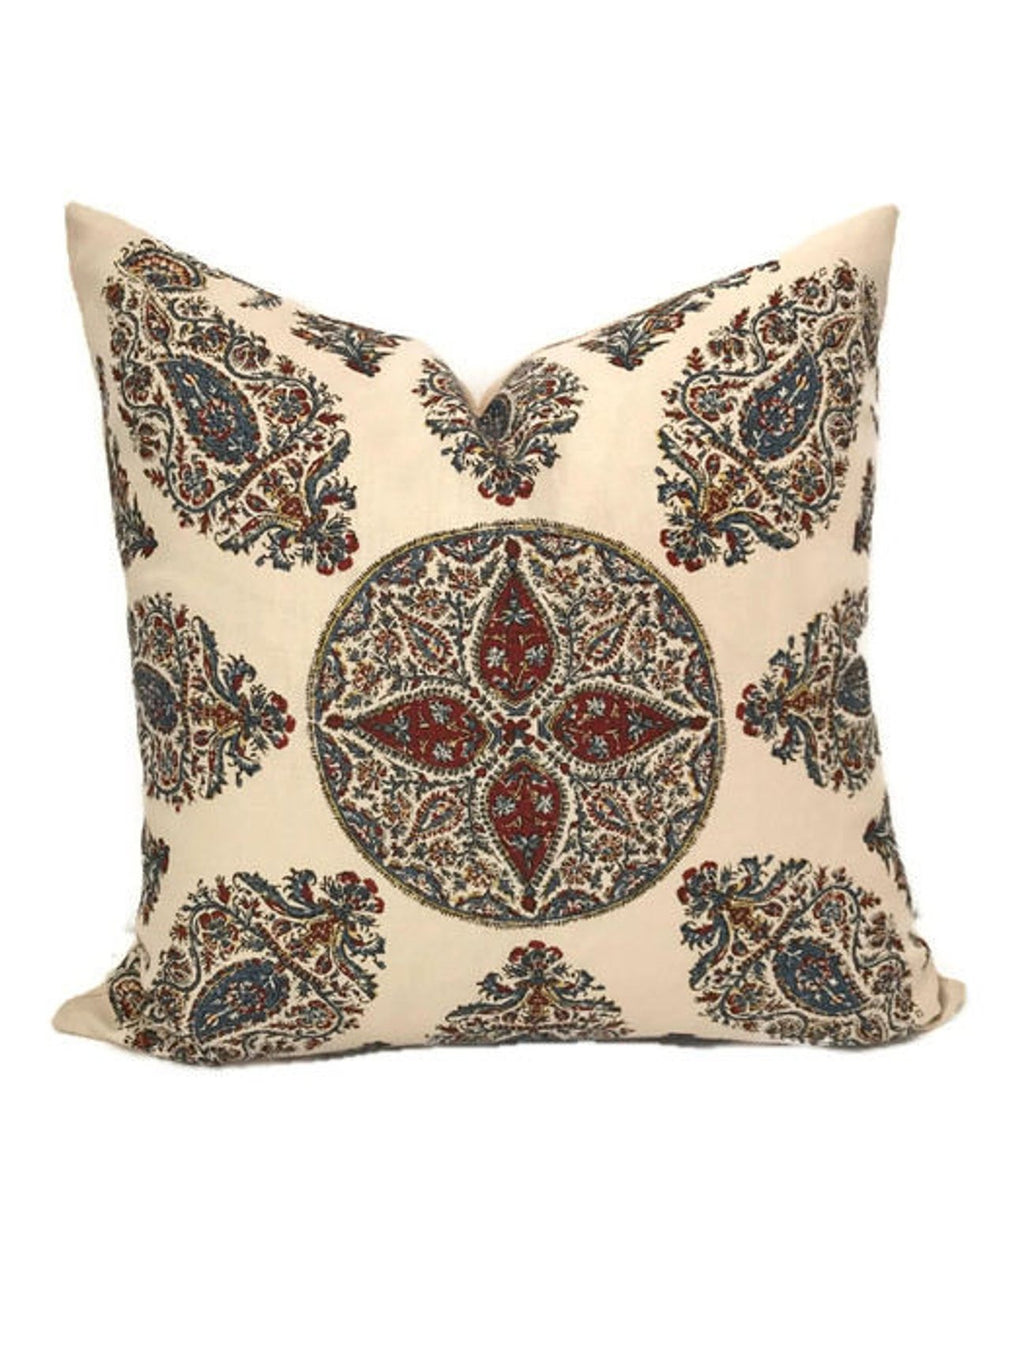 Ready to Ship, 22x22, Peter Dunham Samarkand Pillow Cover in Red Blue